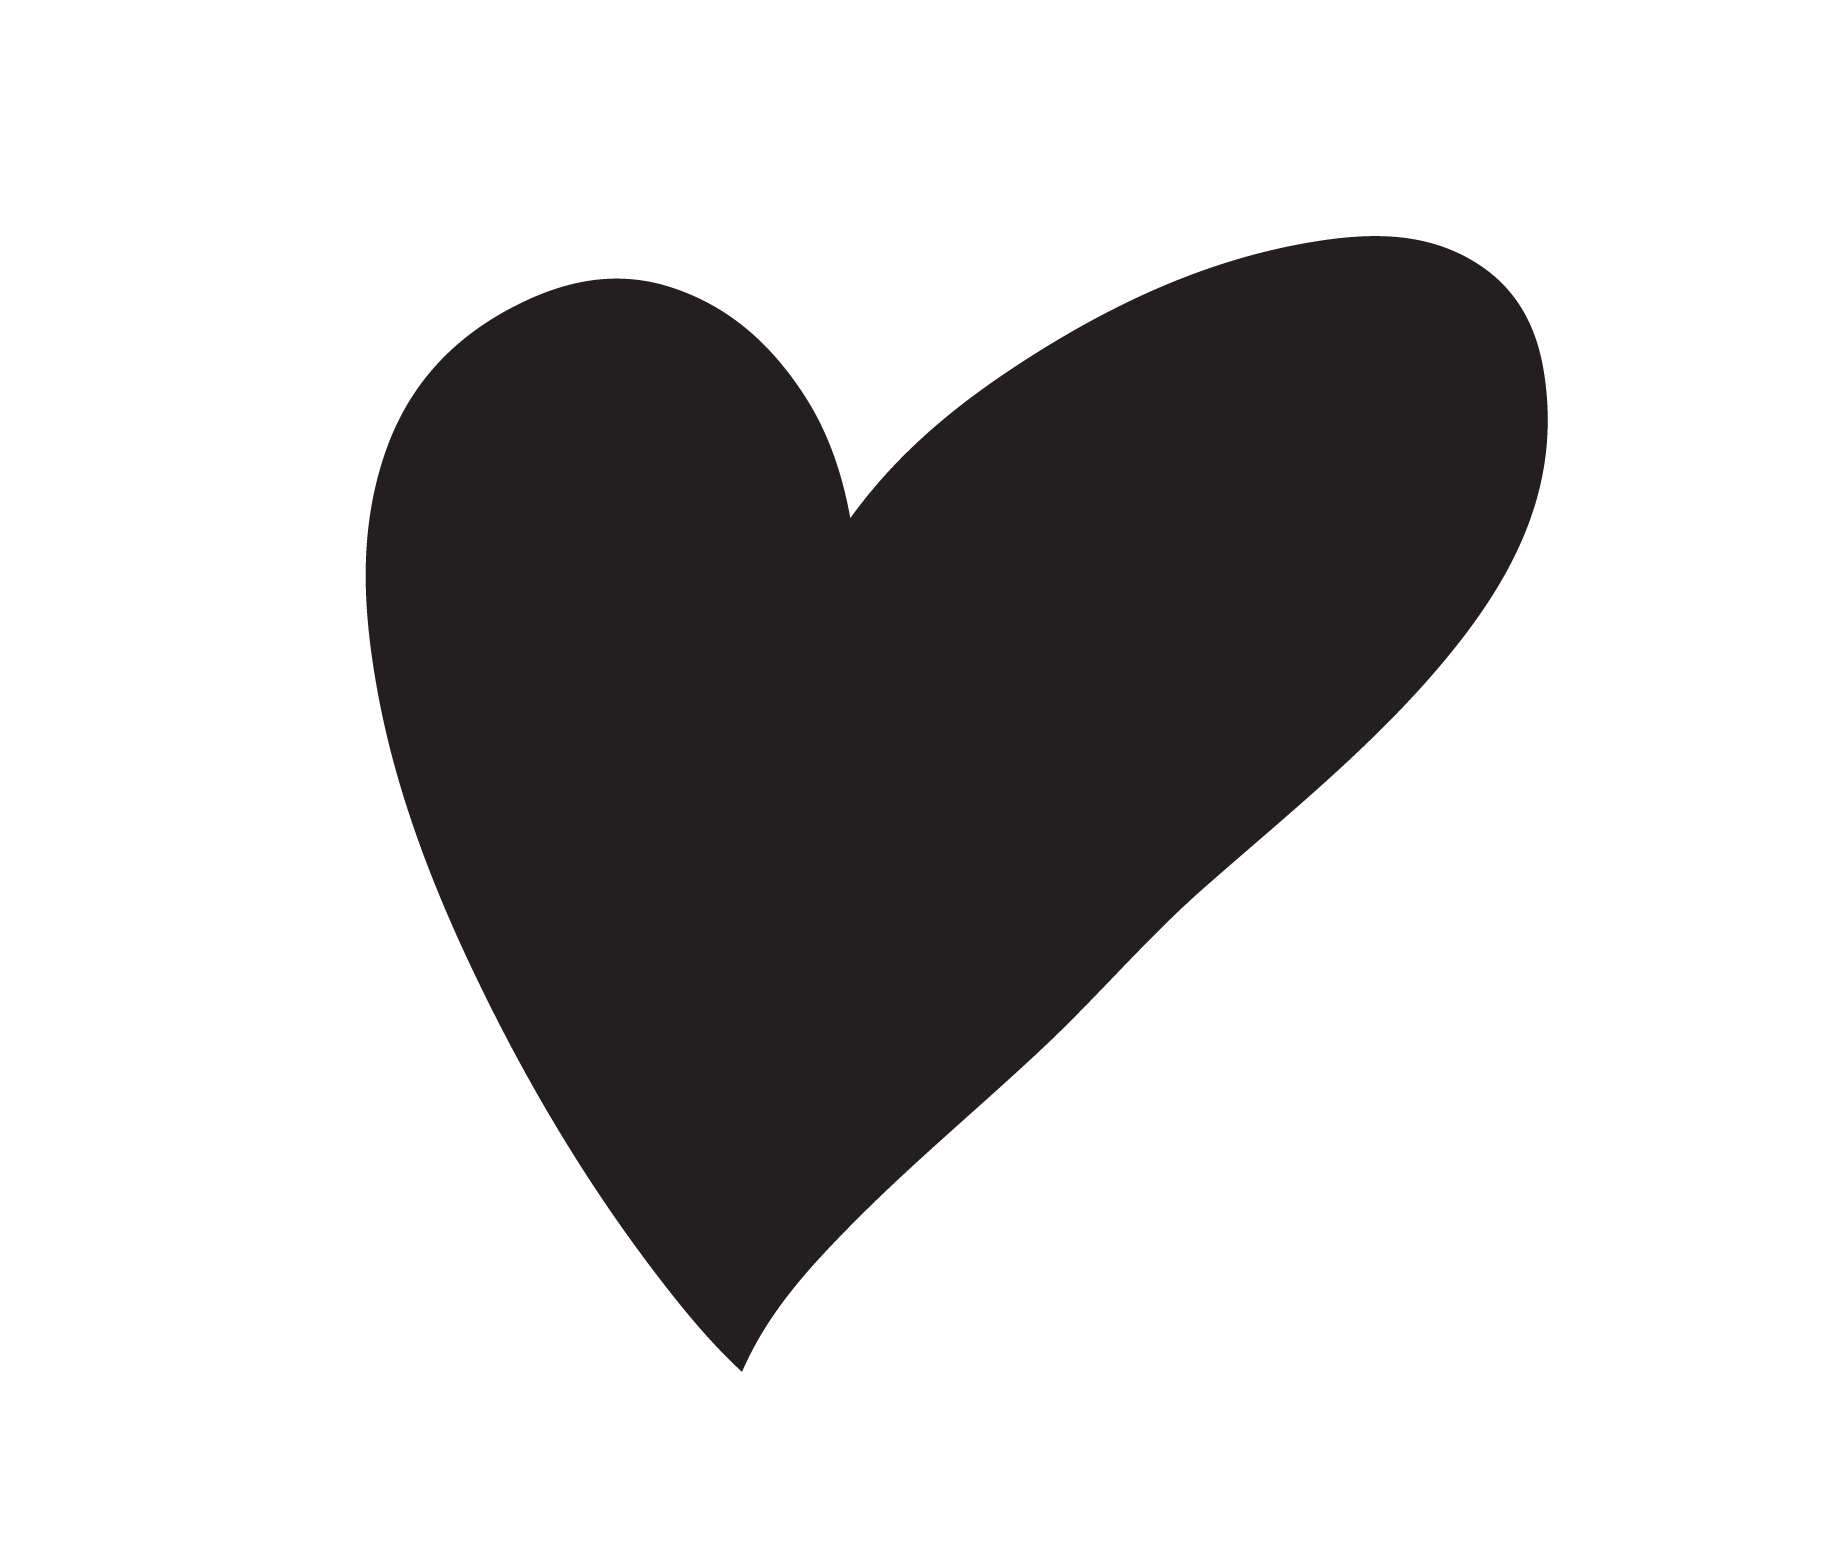 Heart Shape Vector at GetDrawings | Free download